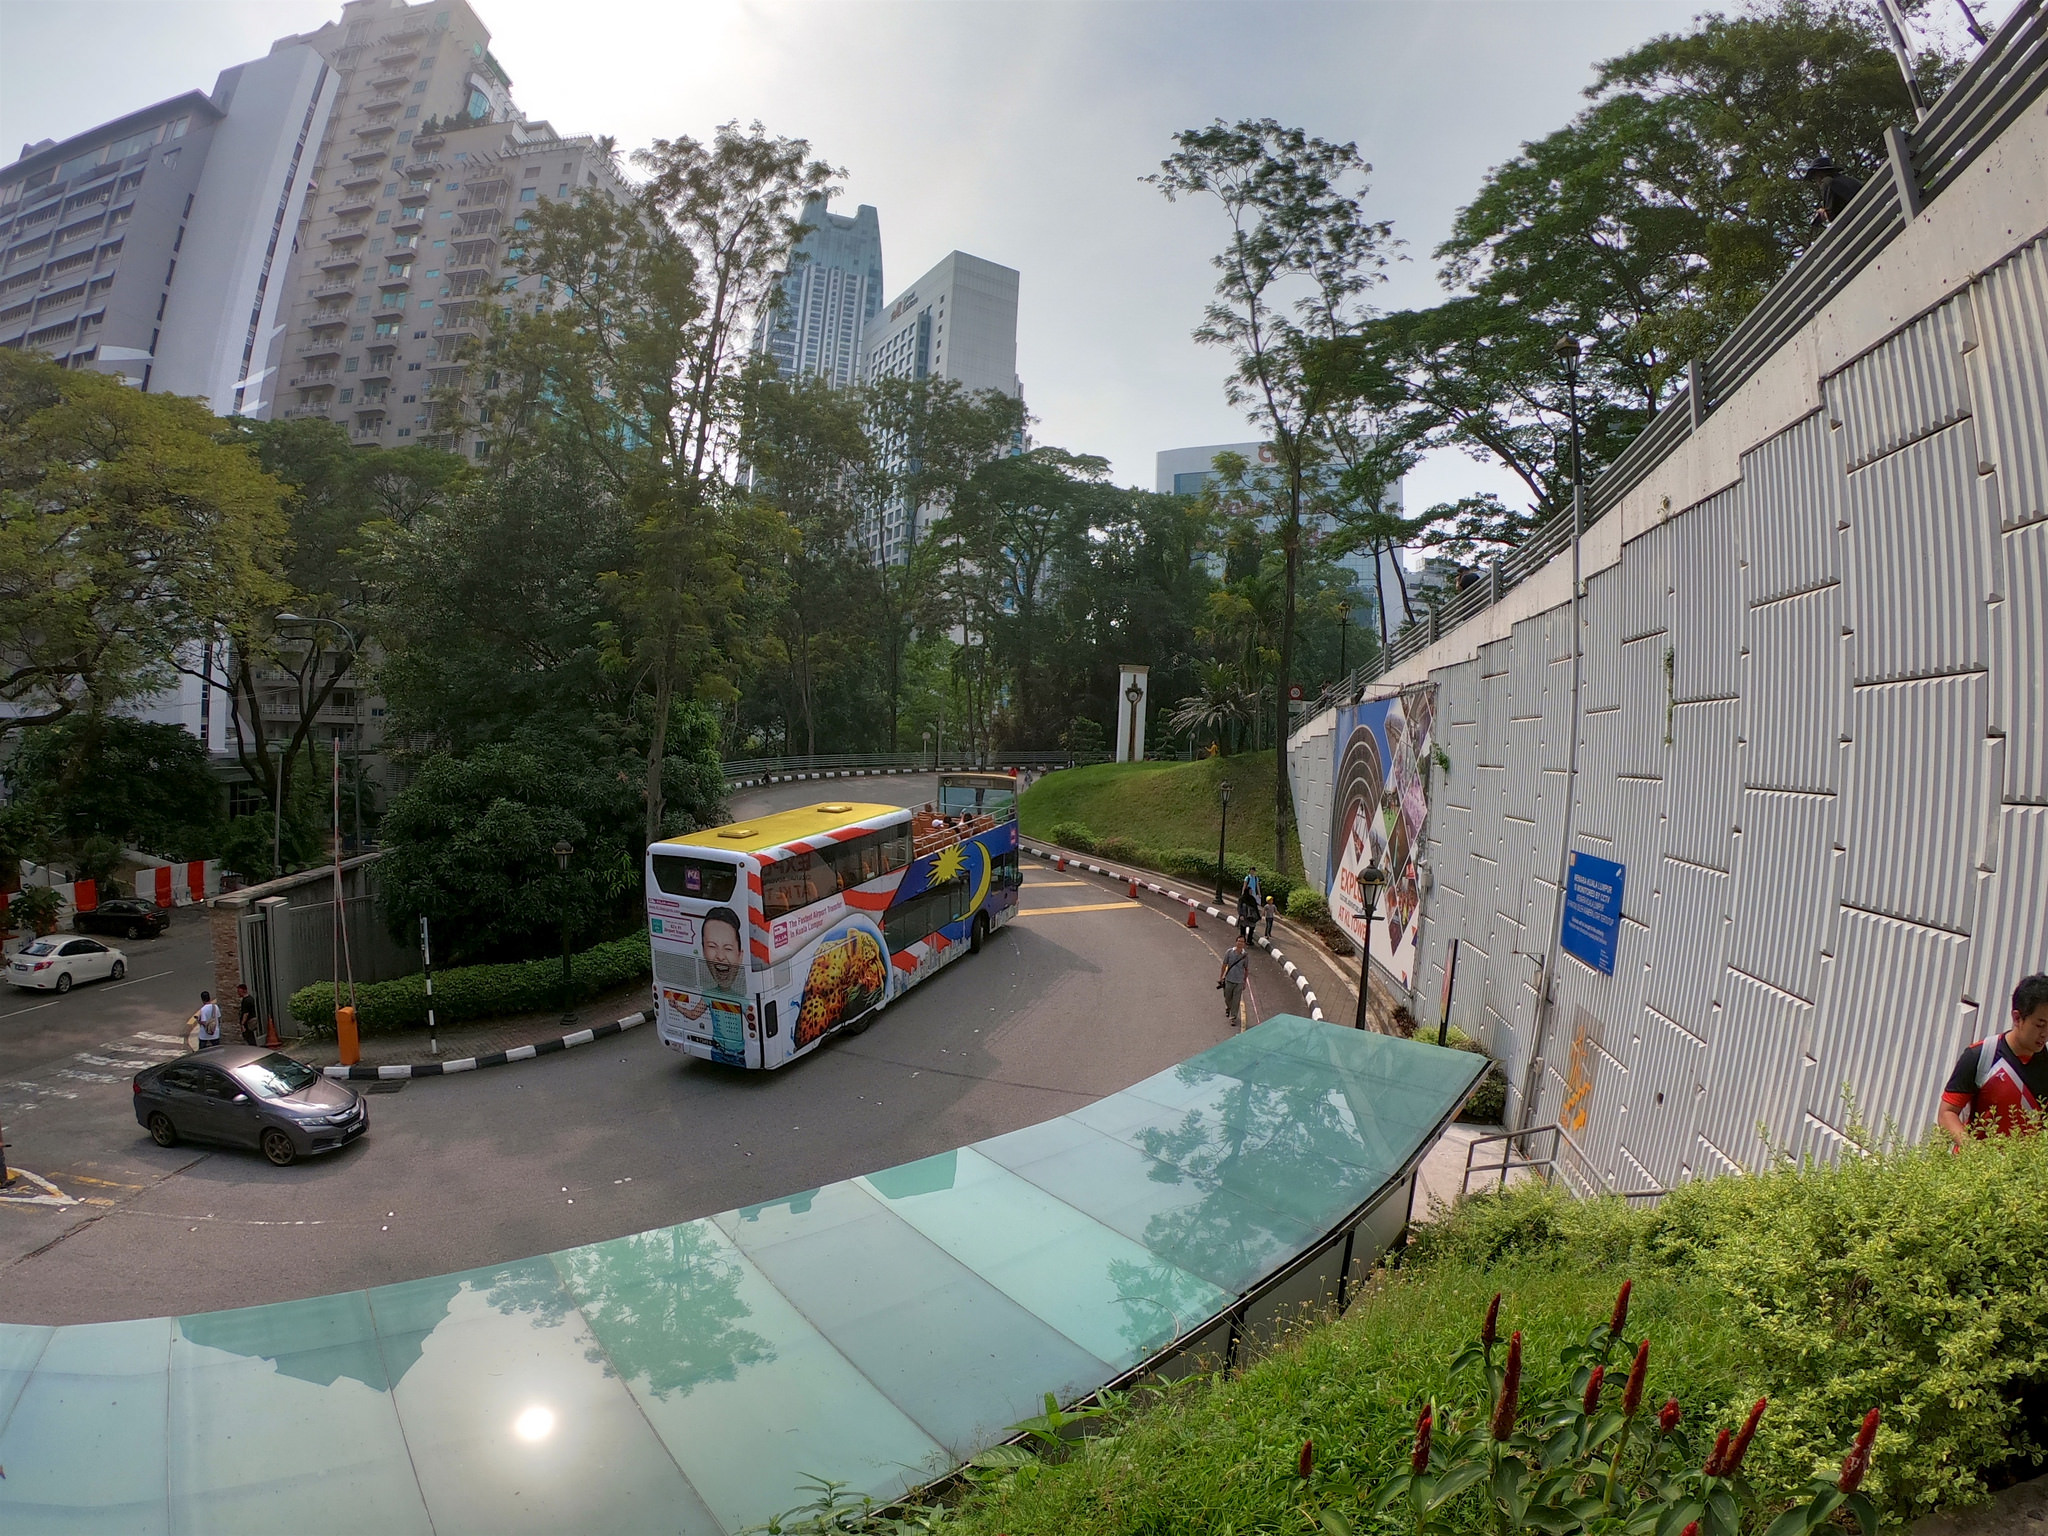 Open-topped bus going up the hill